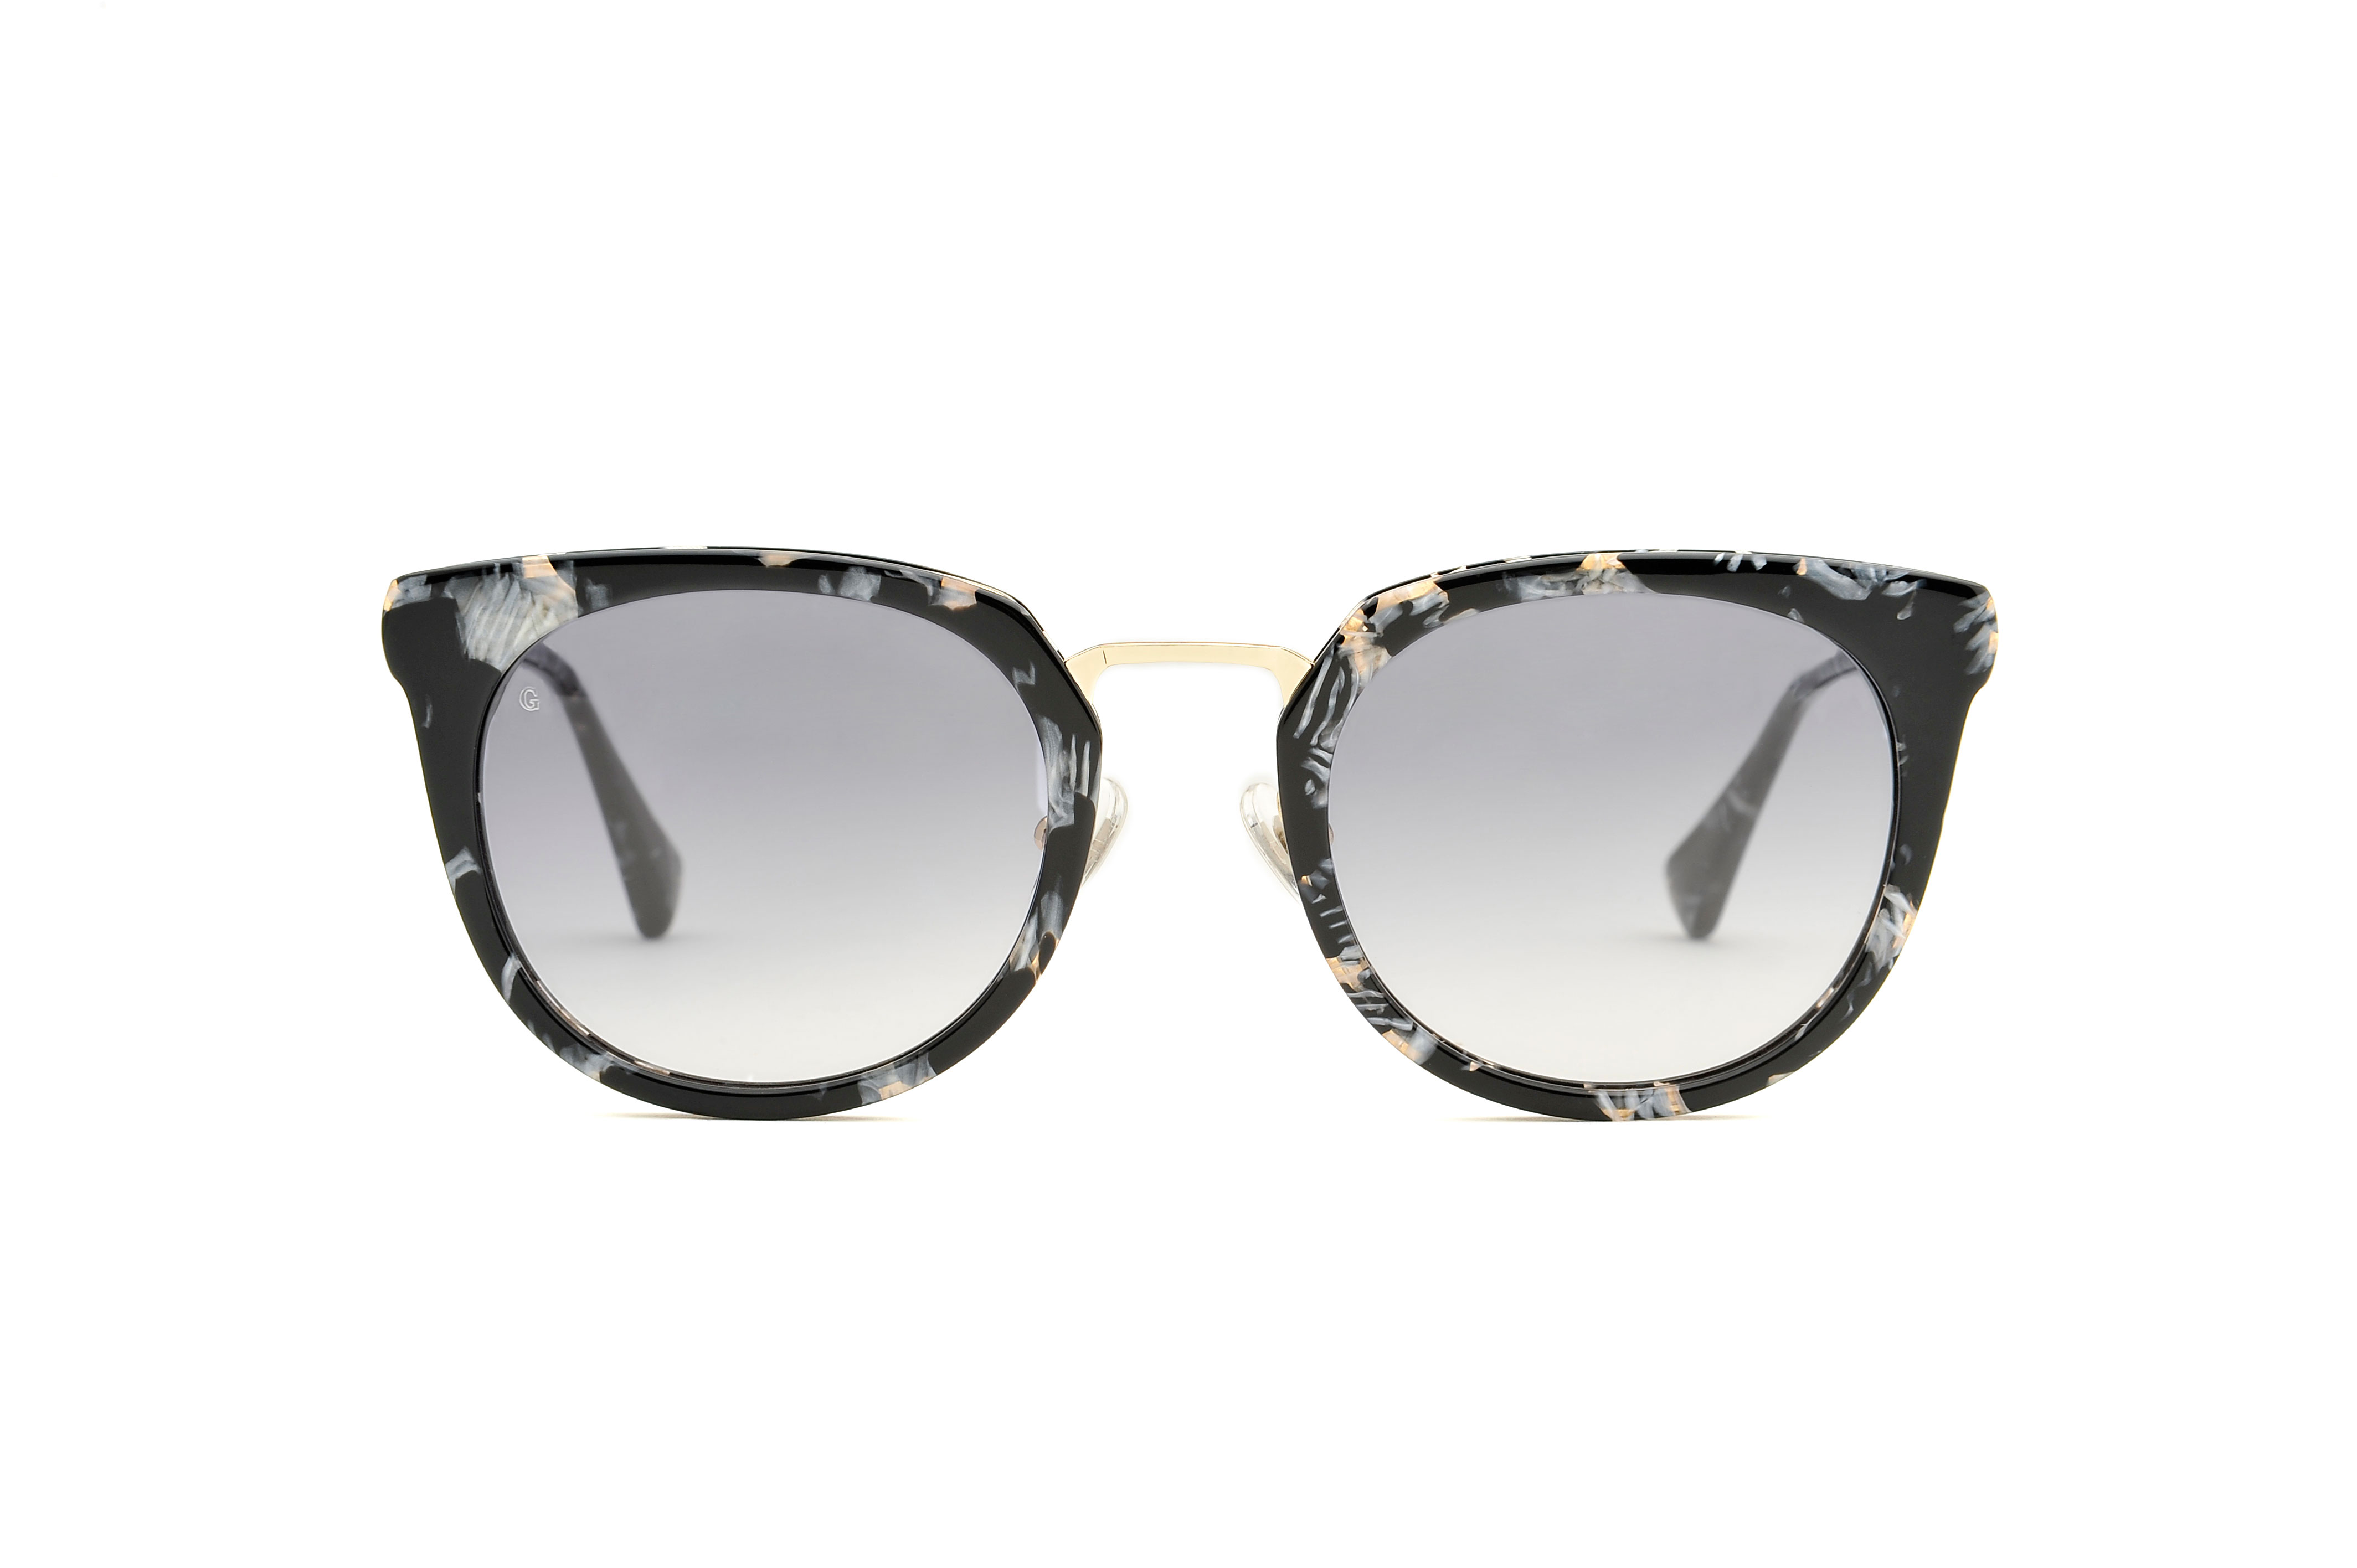 Alia acetate/metal squared grey sunglasses by GIGI Studios